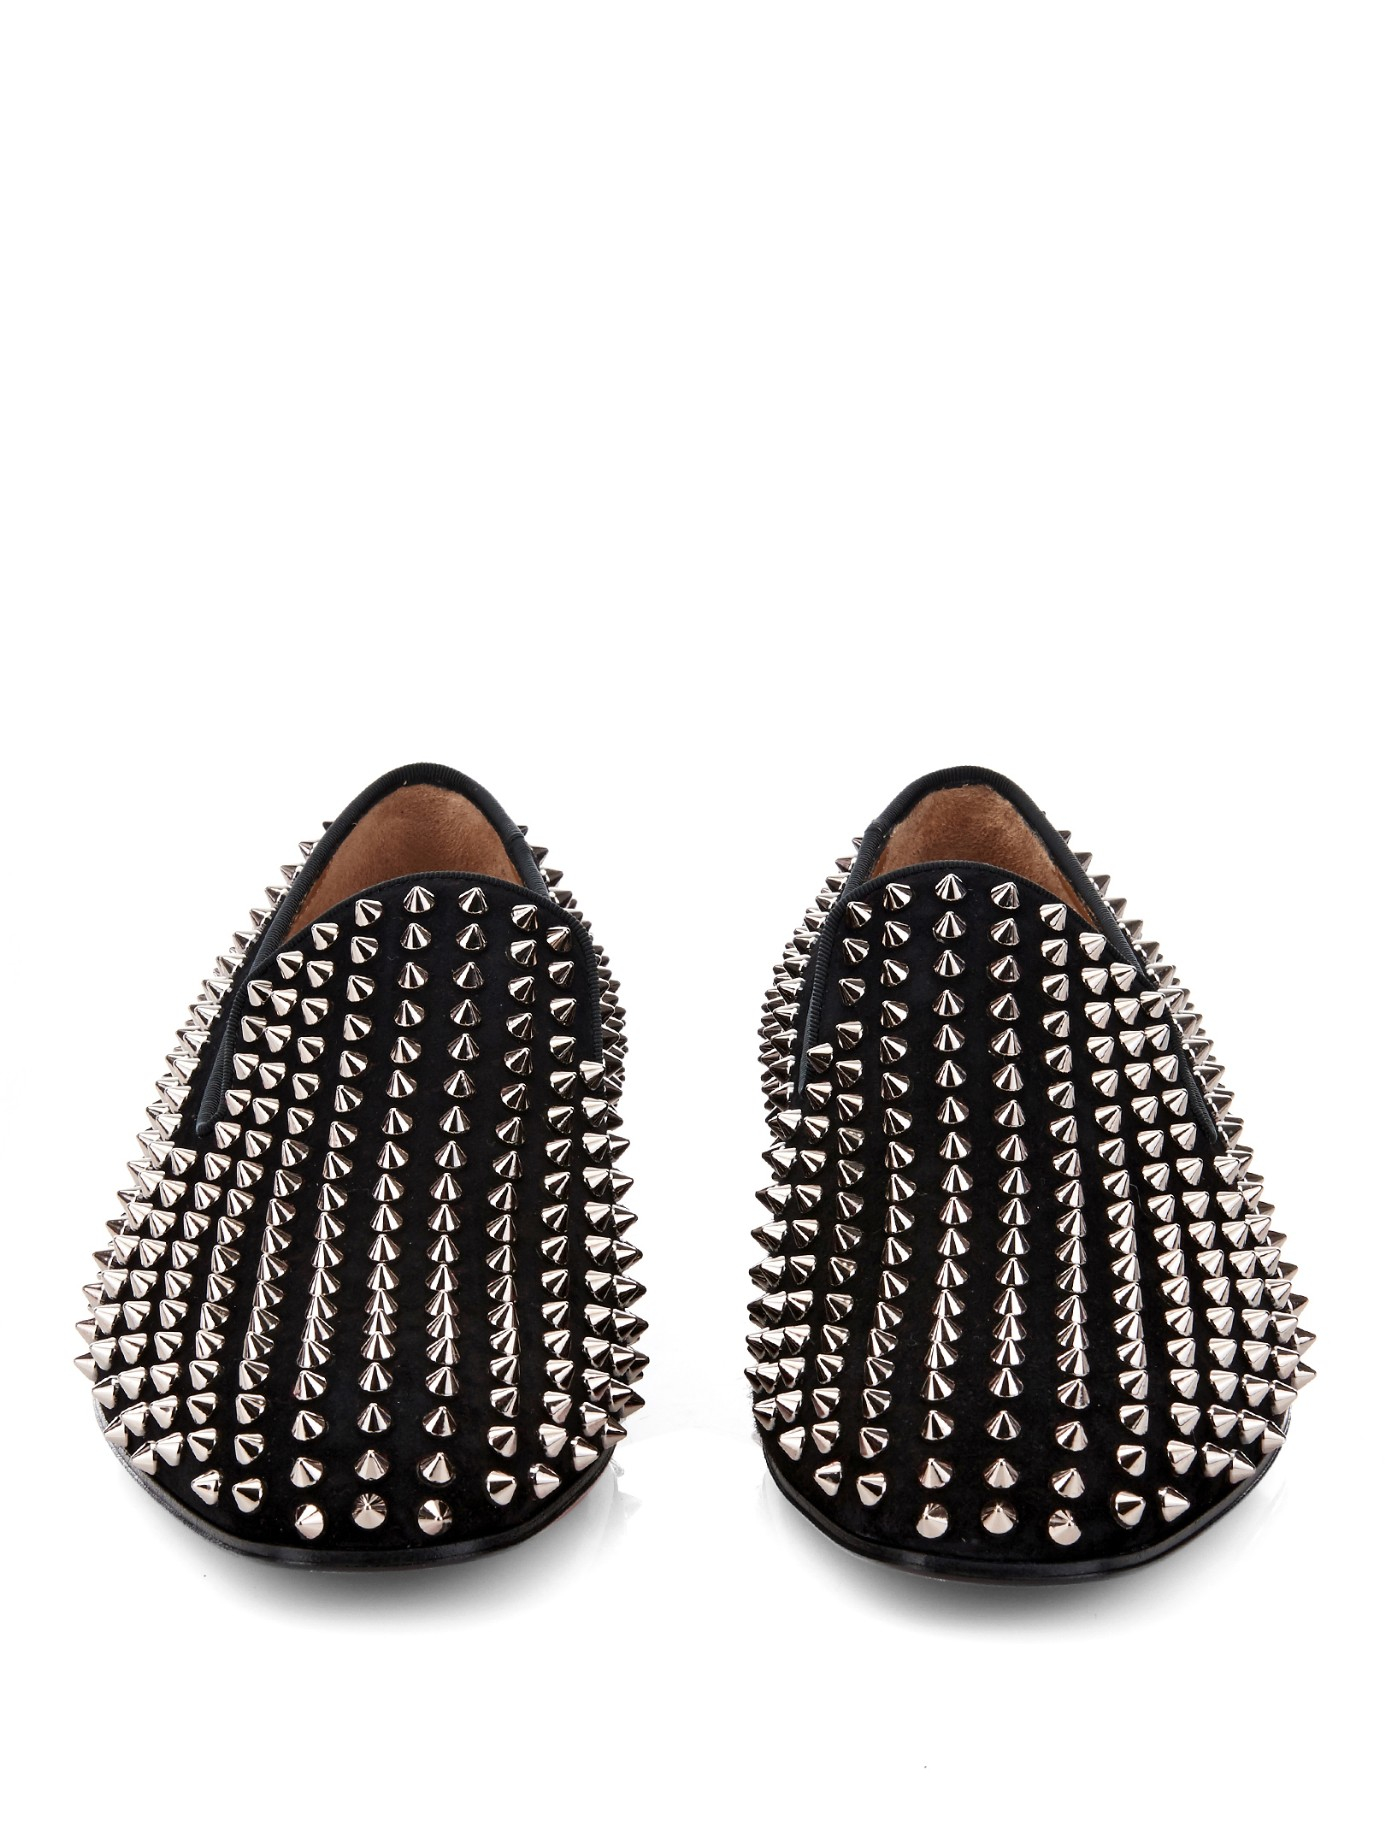 76e189c6a9f Lyst - Christian Louboutin Dandelion Studded Suede Loafers in Black ...